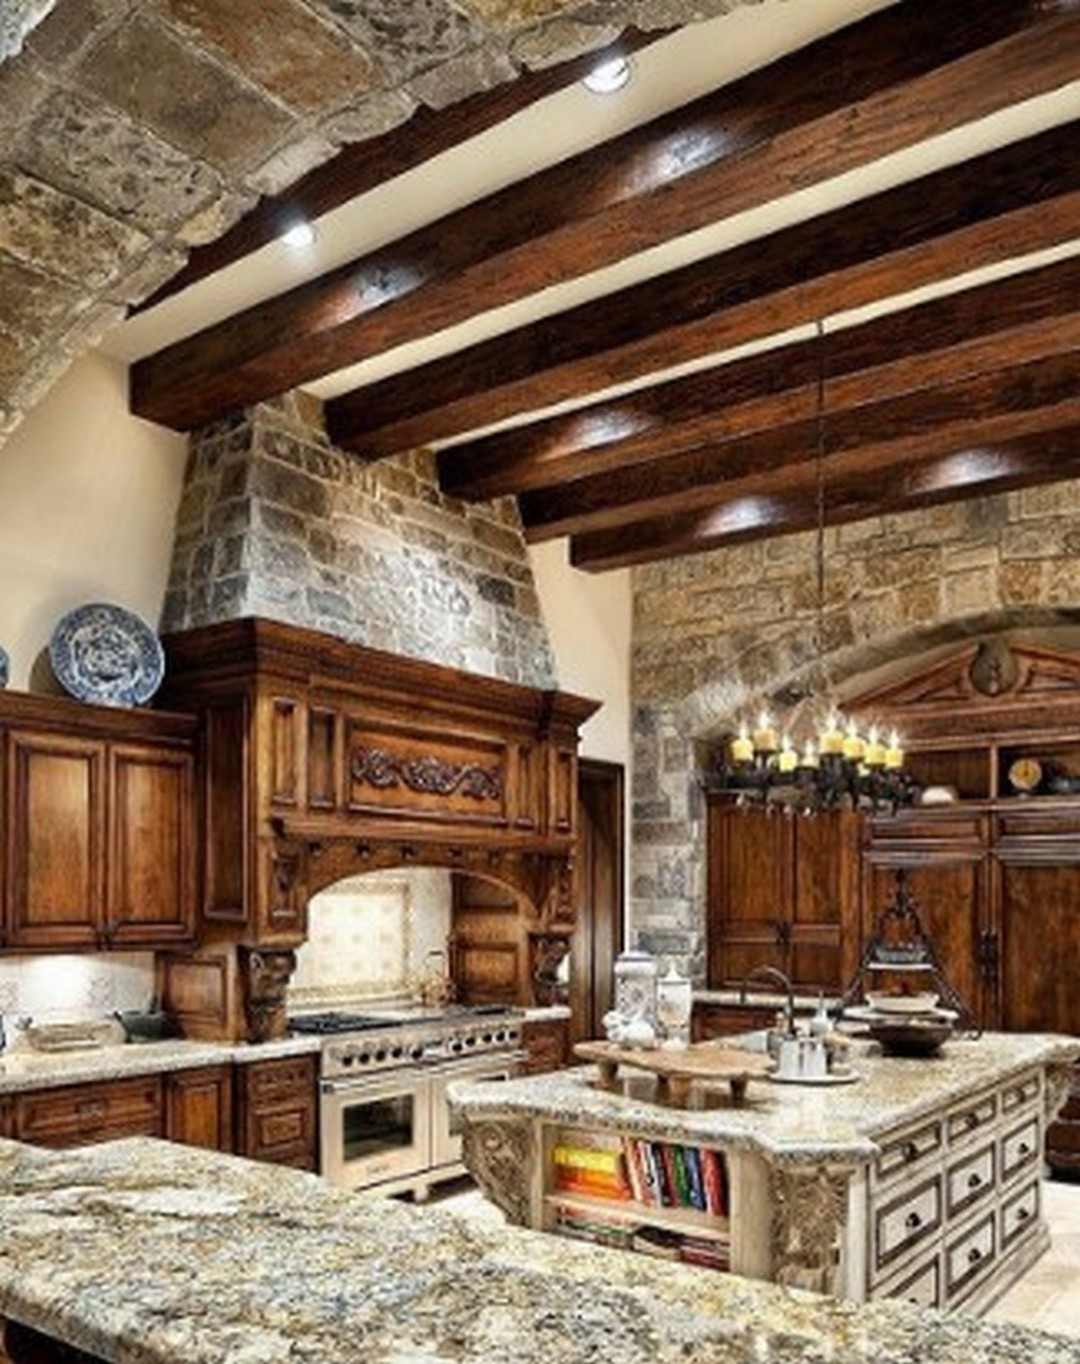 Decorating Ideas That Have The Most Beautiful Kitchens In The World 1